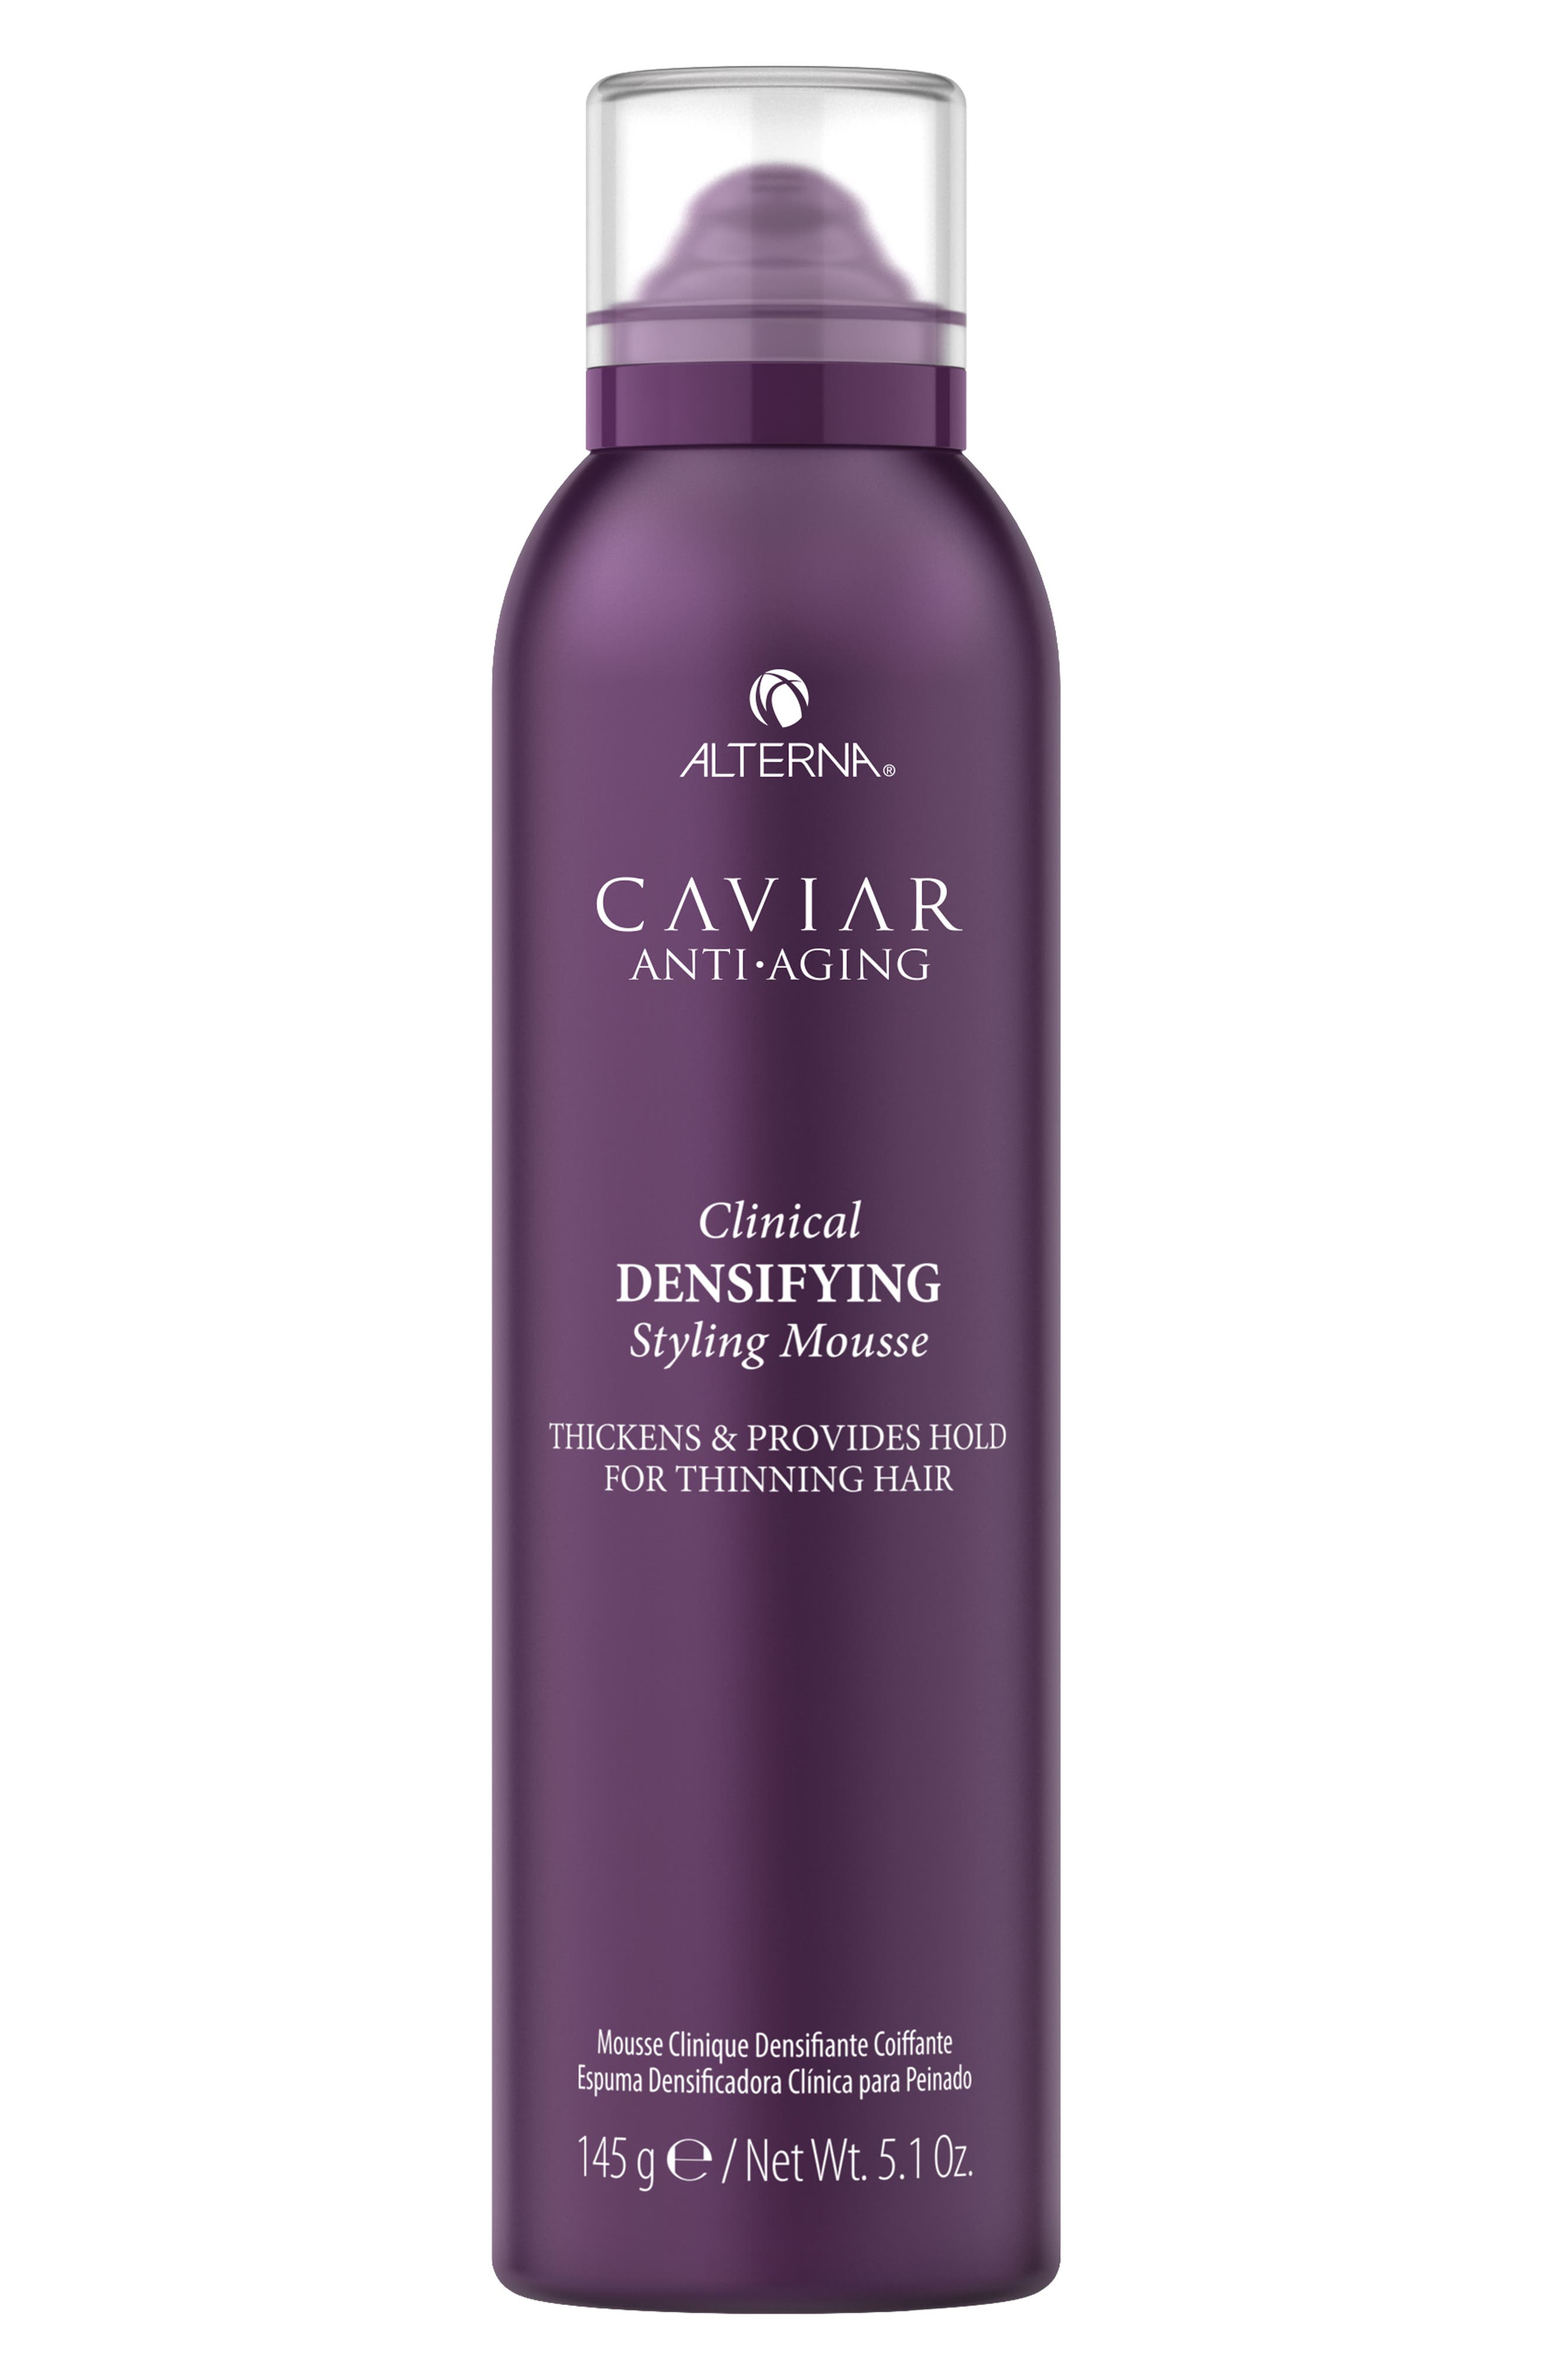 Caviar Anti-Aging Clinical Densifying Styling Mousse,                             Main thumbnail 1, color,                             NO COLOR